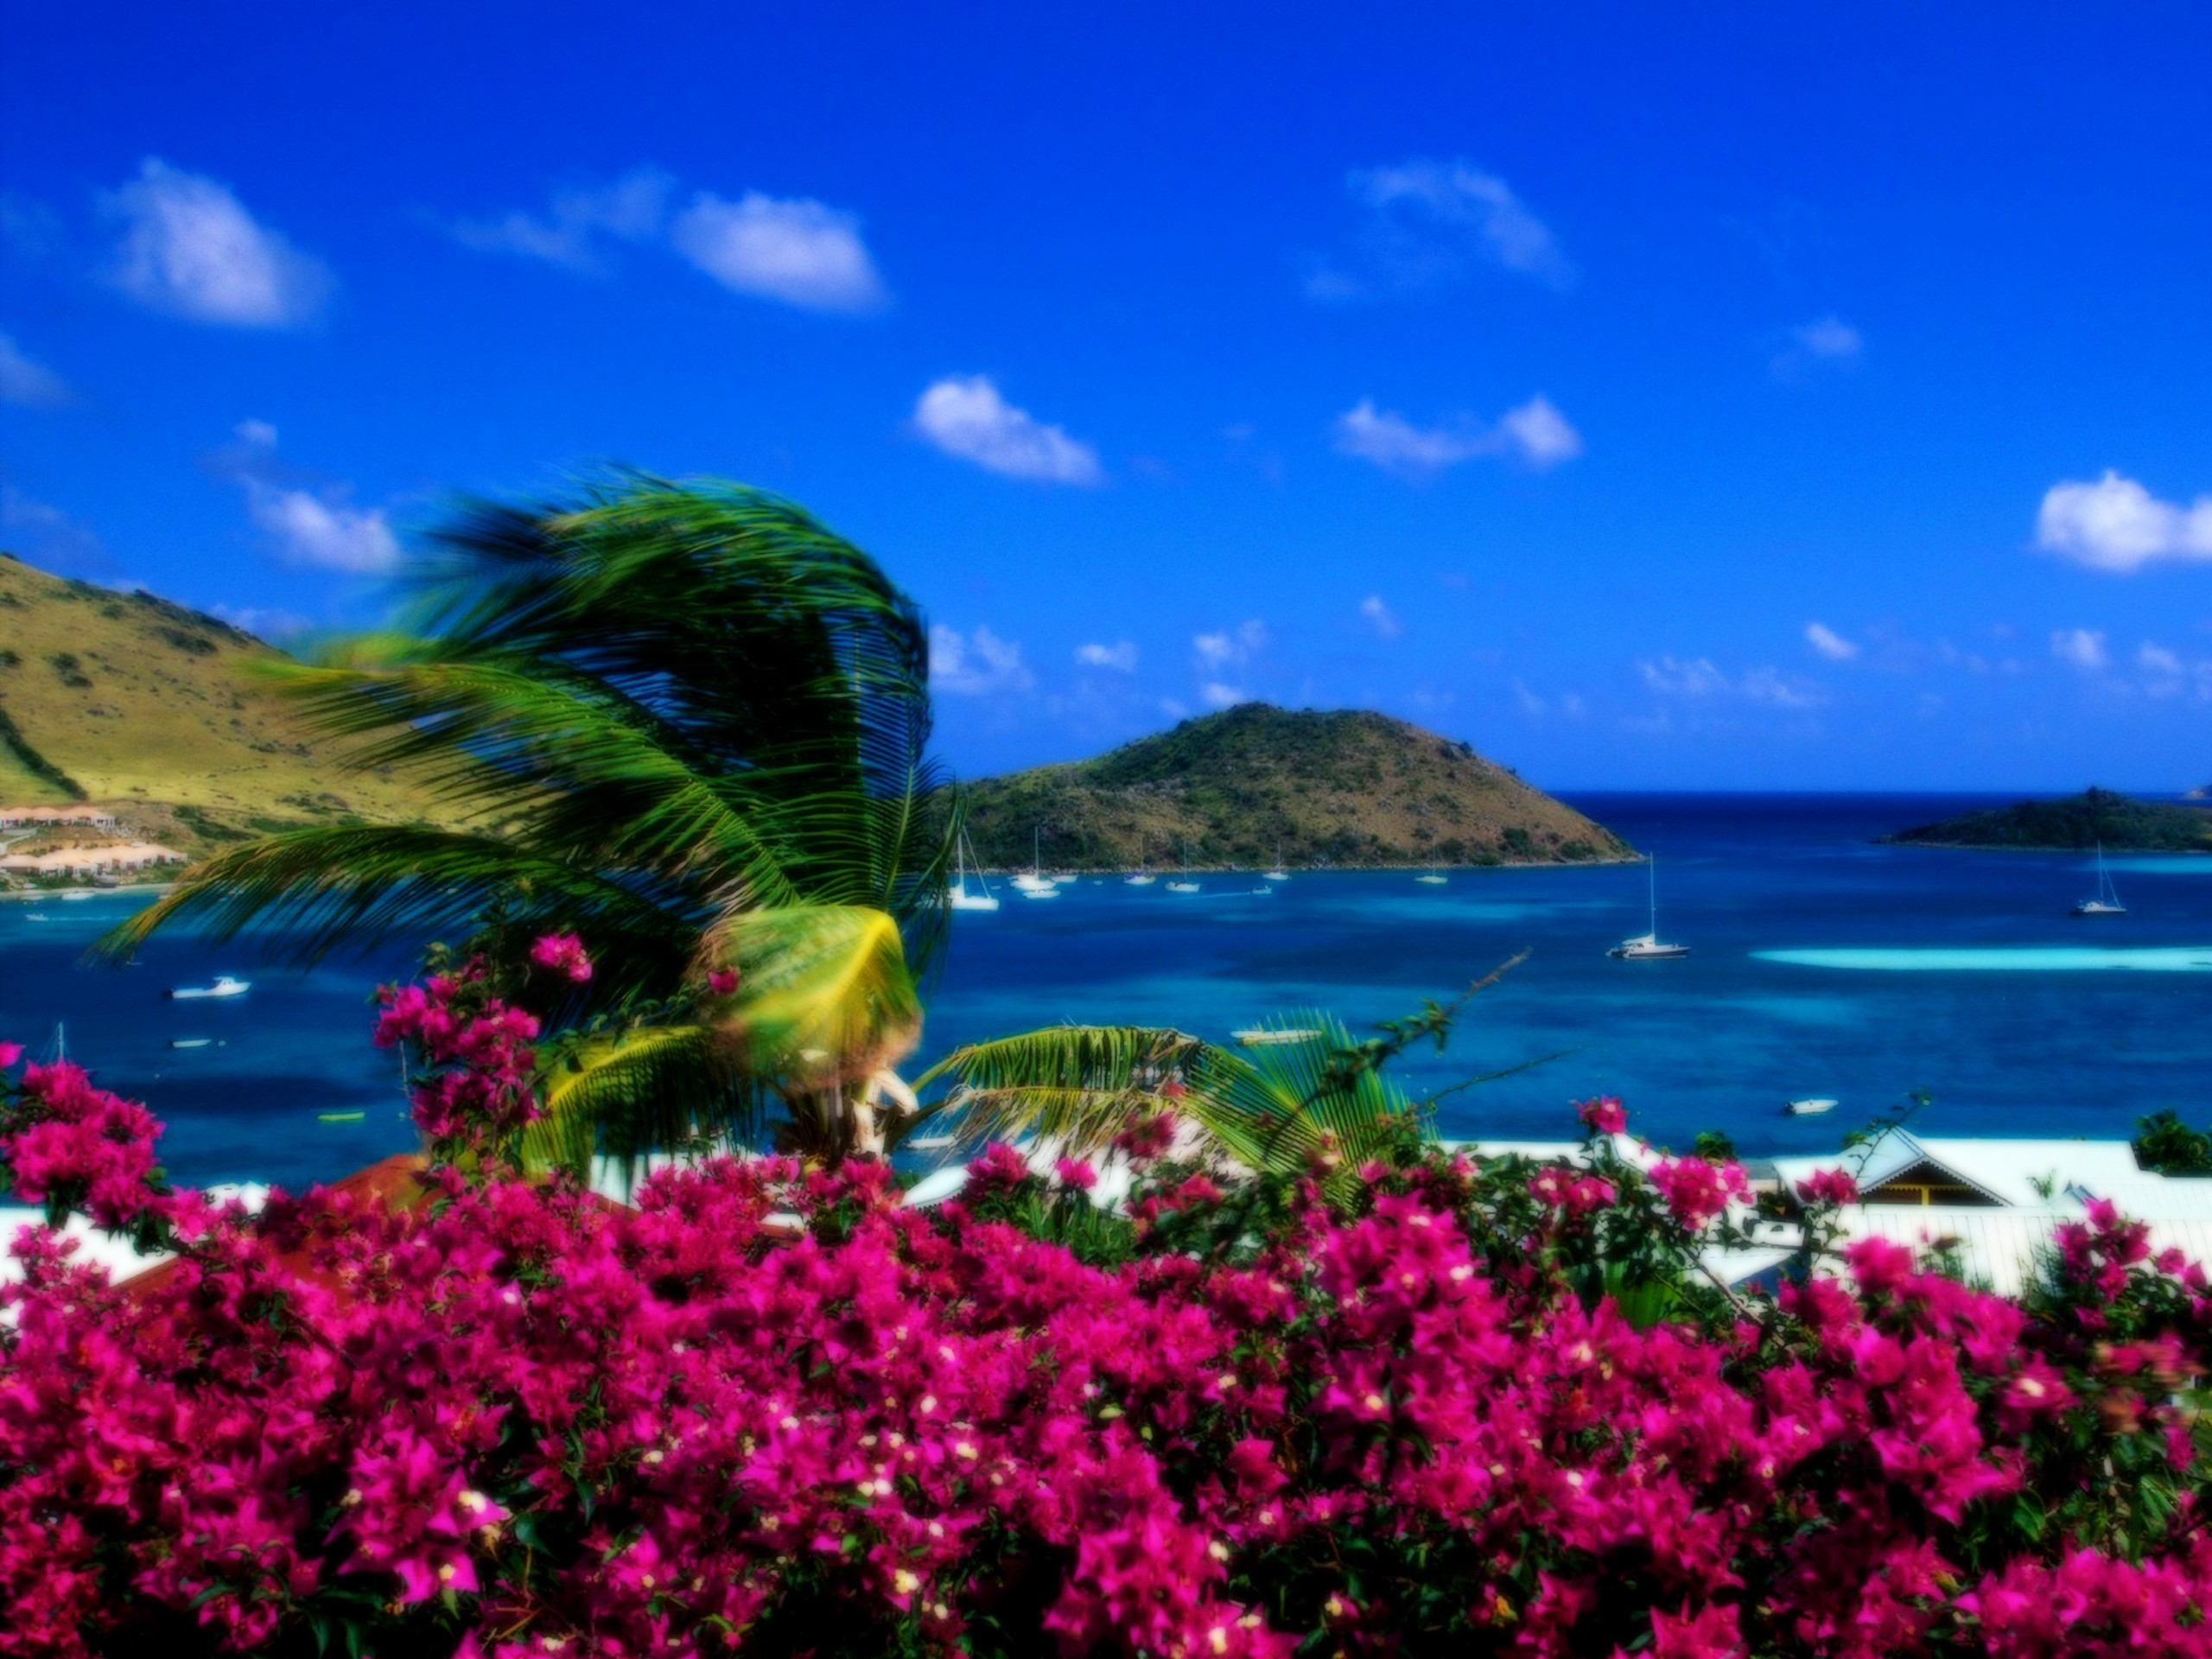 2560x1920 Landscapes Beach Wallpaper  Landscapes, Beach, Flowers, Palm .